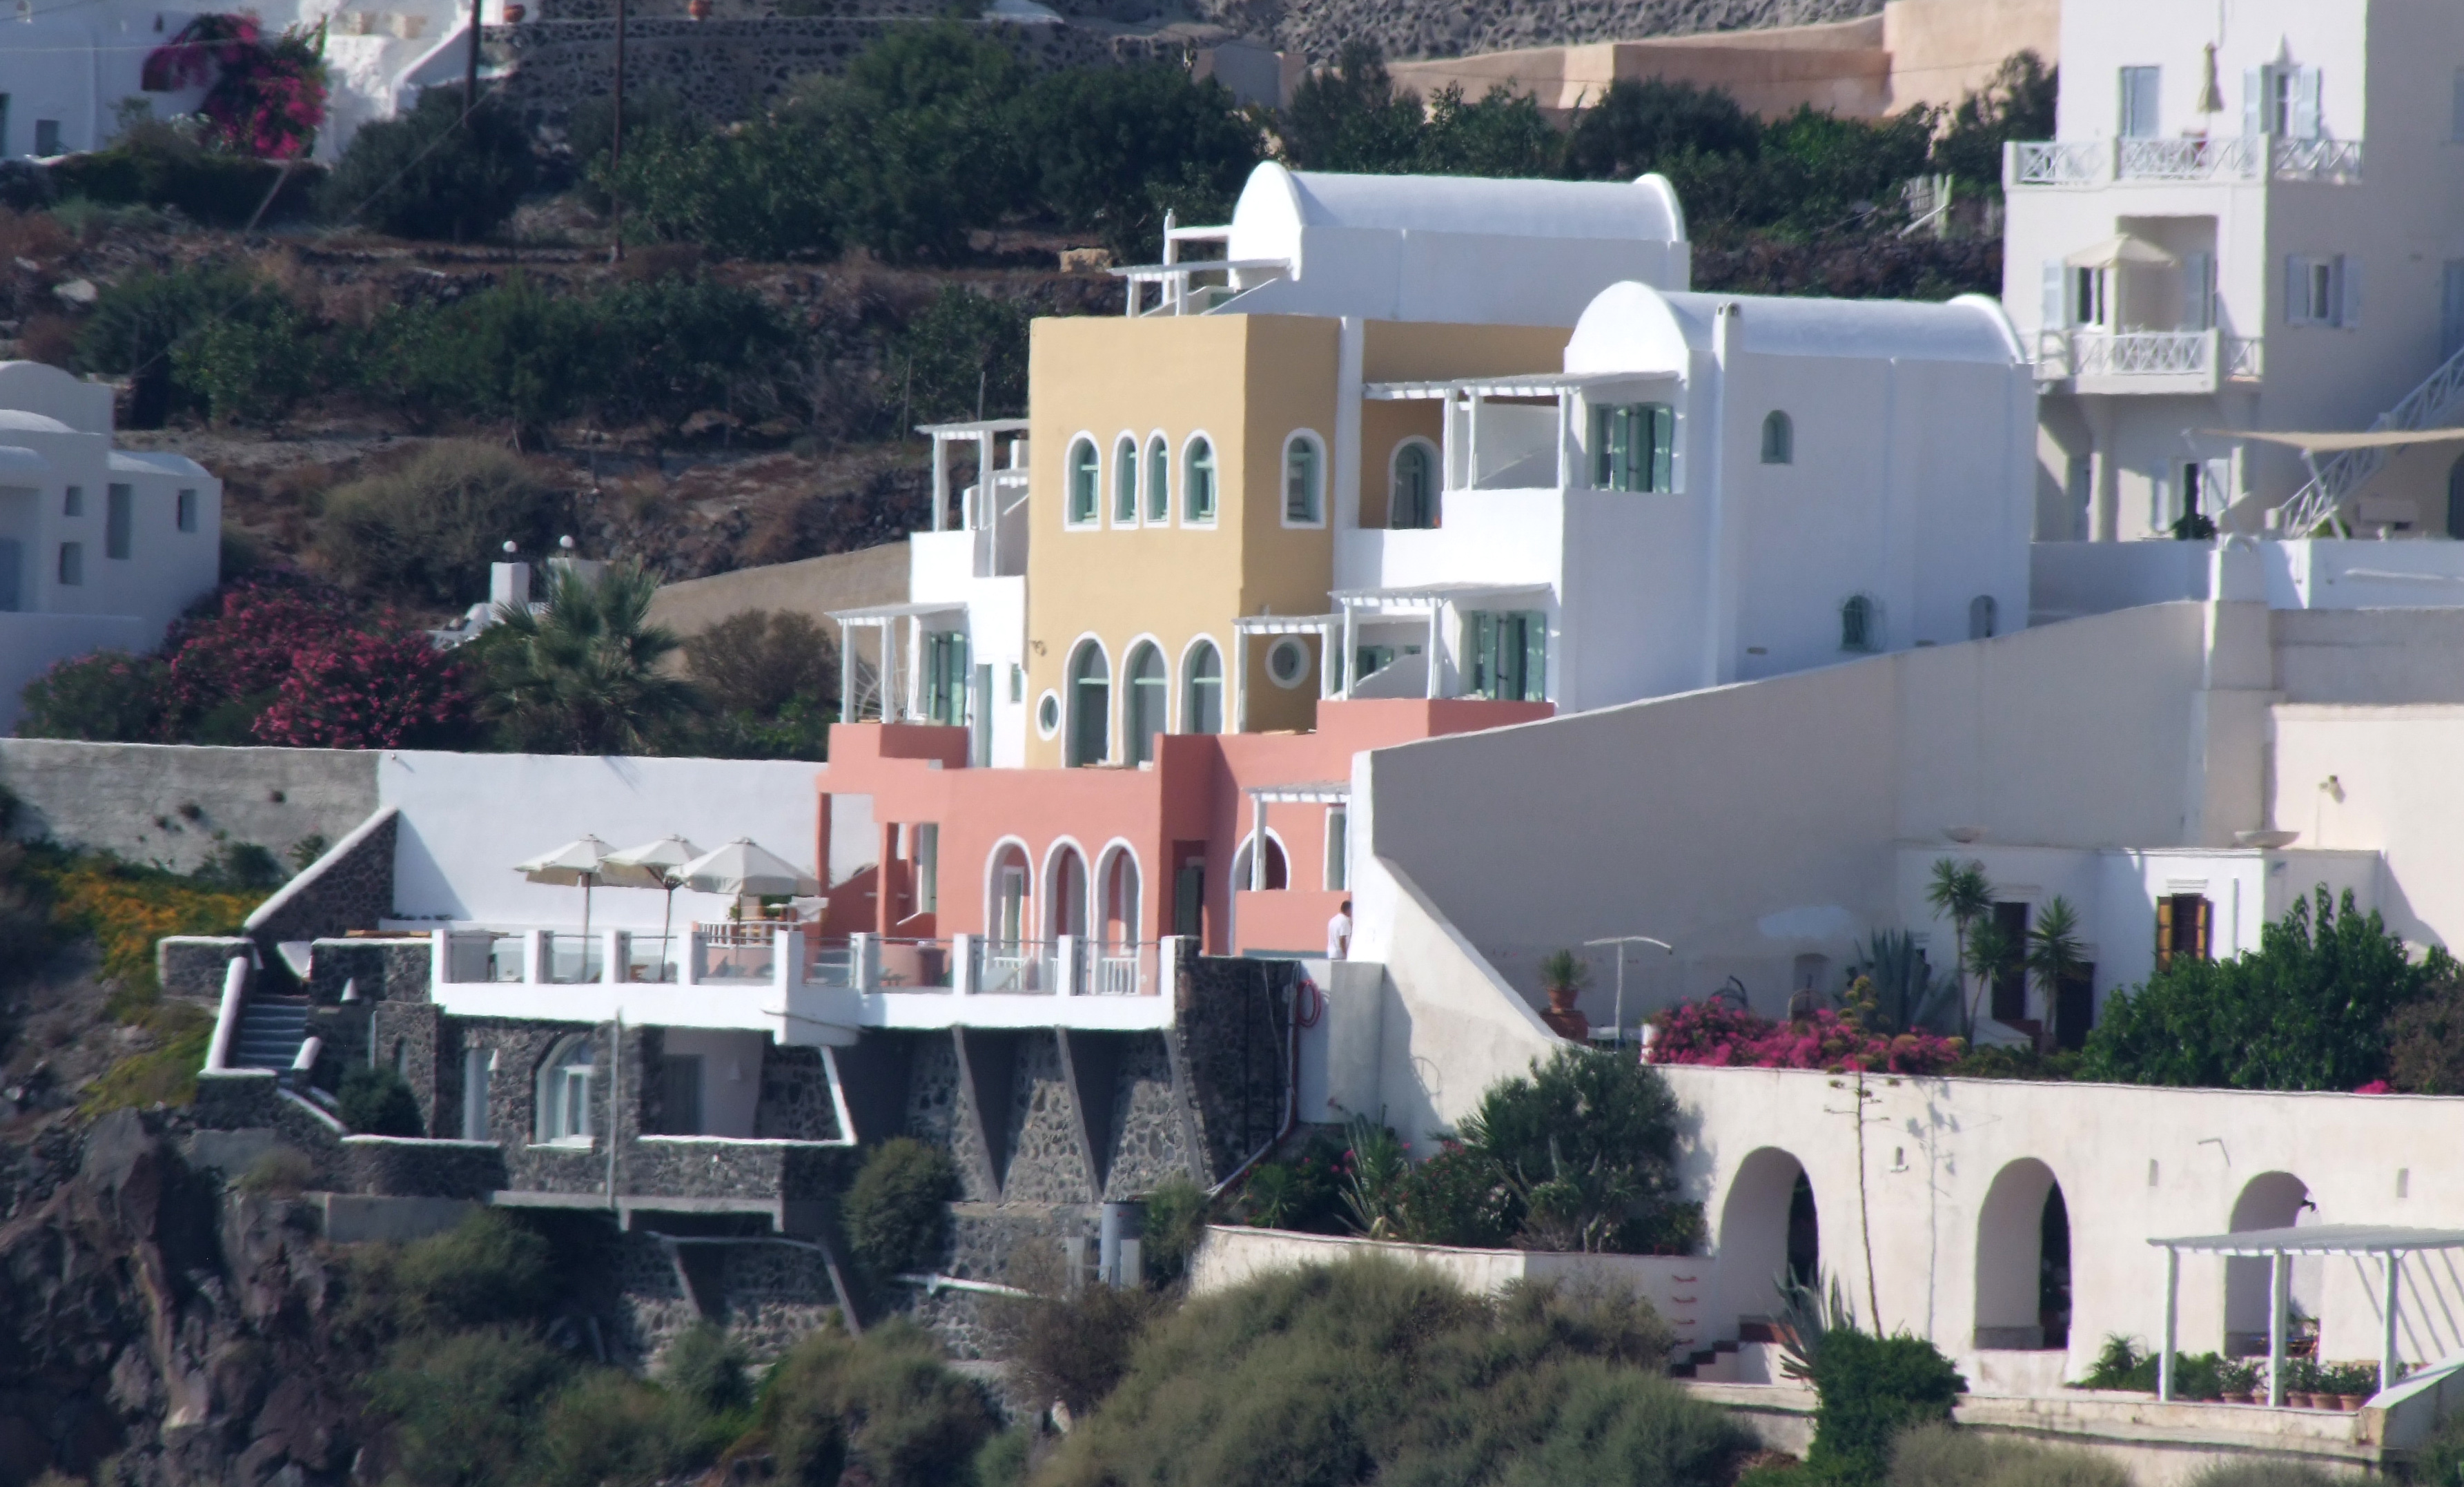 The caldera view building of Ira Hotel & Spa in Santorini!